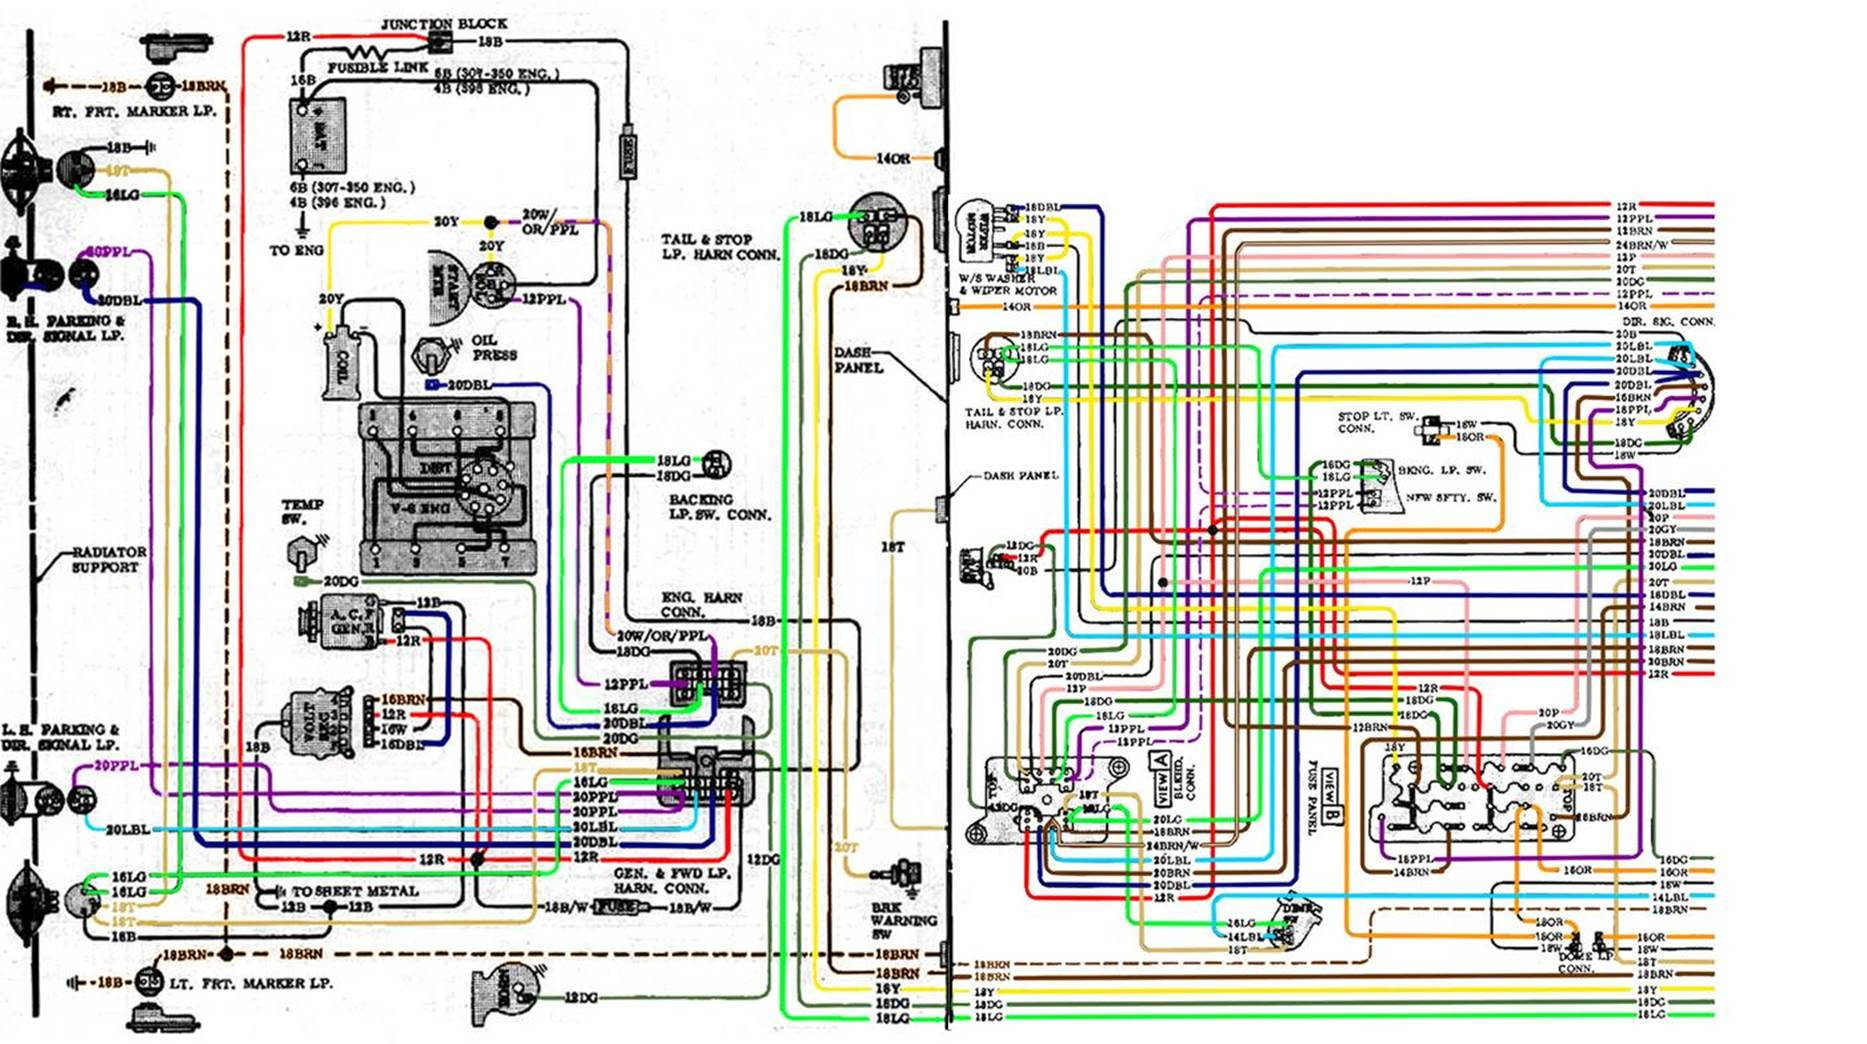 image002 67 72 chevy wiring diagram 1970 chevelle dash wiring diagram at panicattacktreatment.co